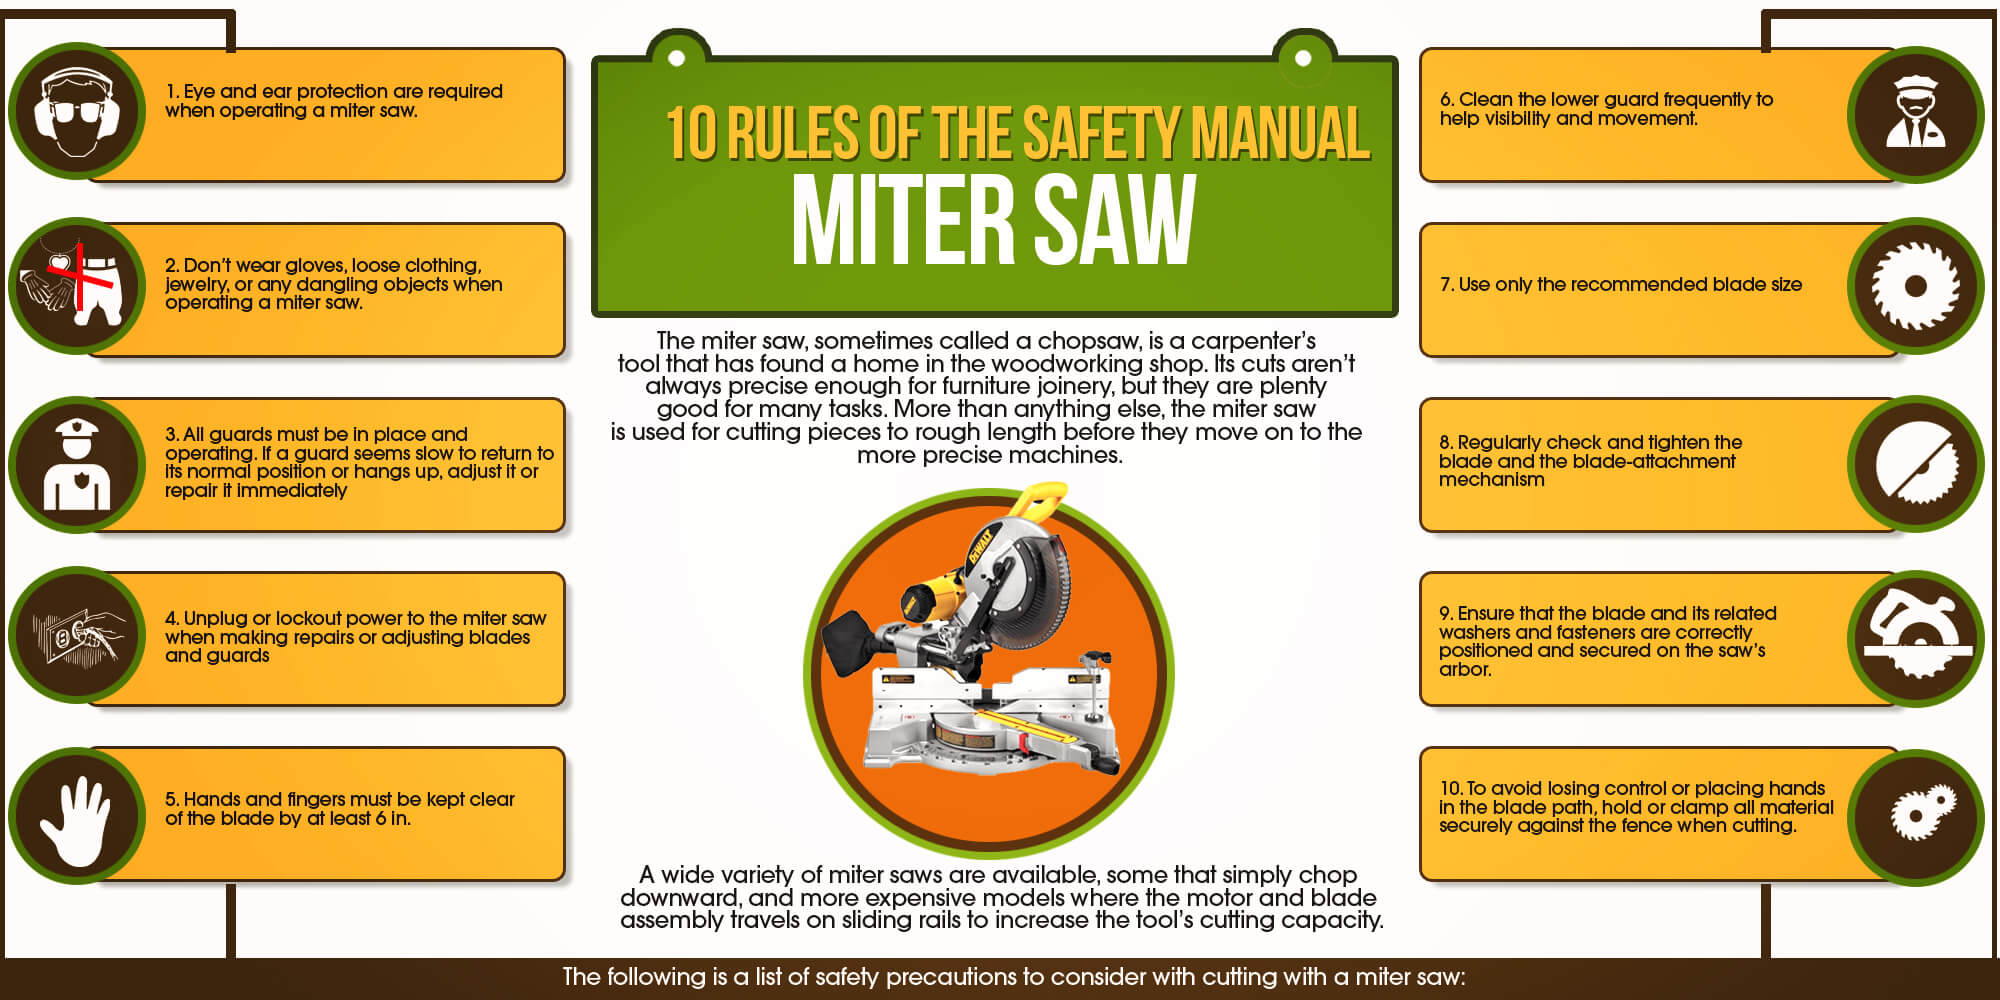 How to Write a Safety Manual